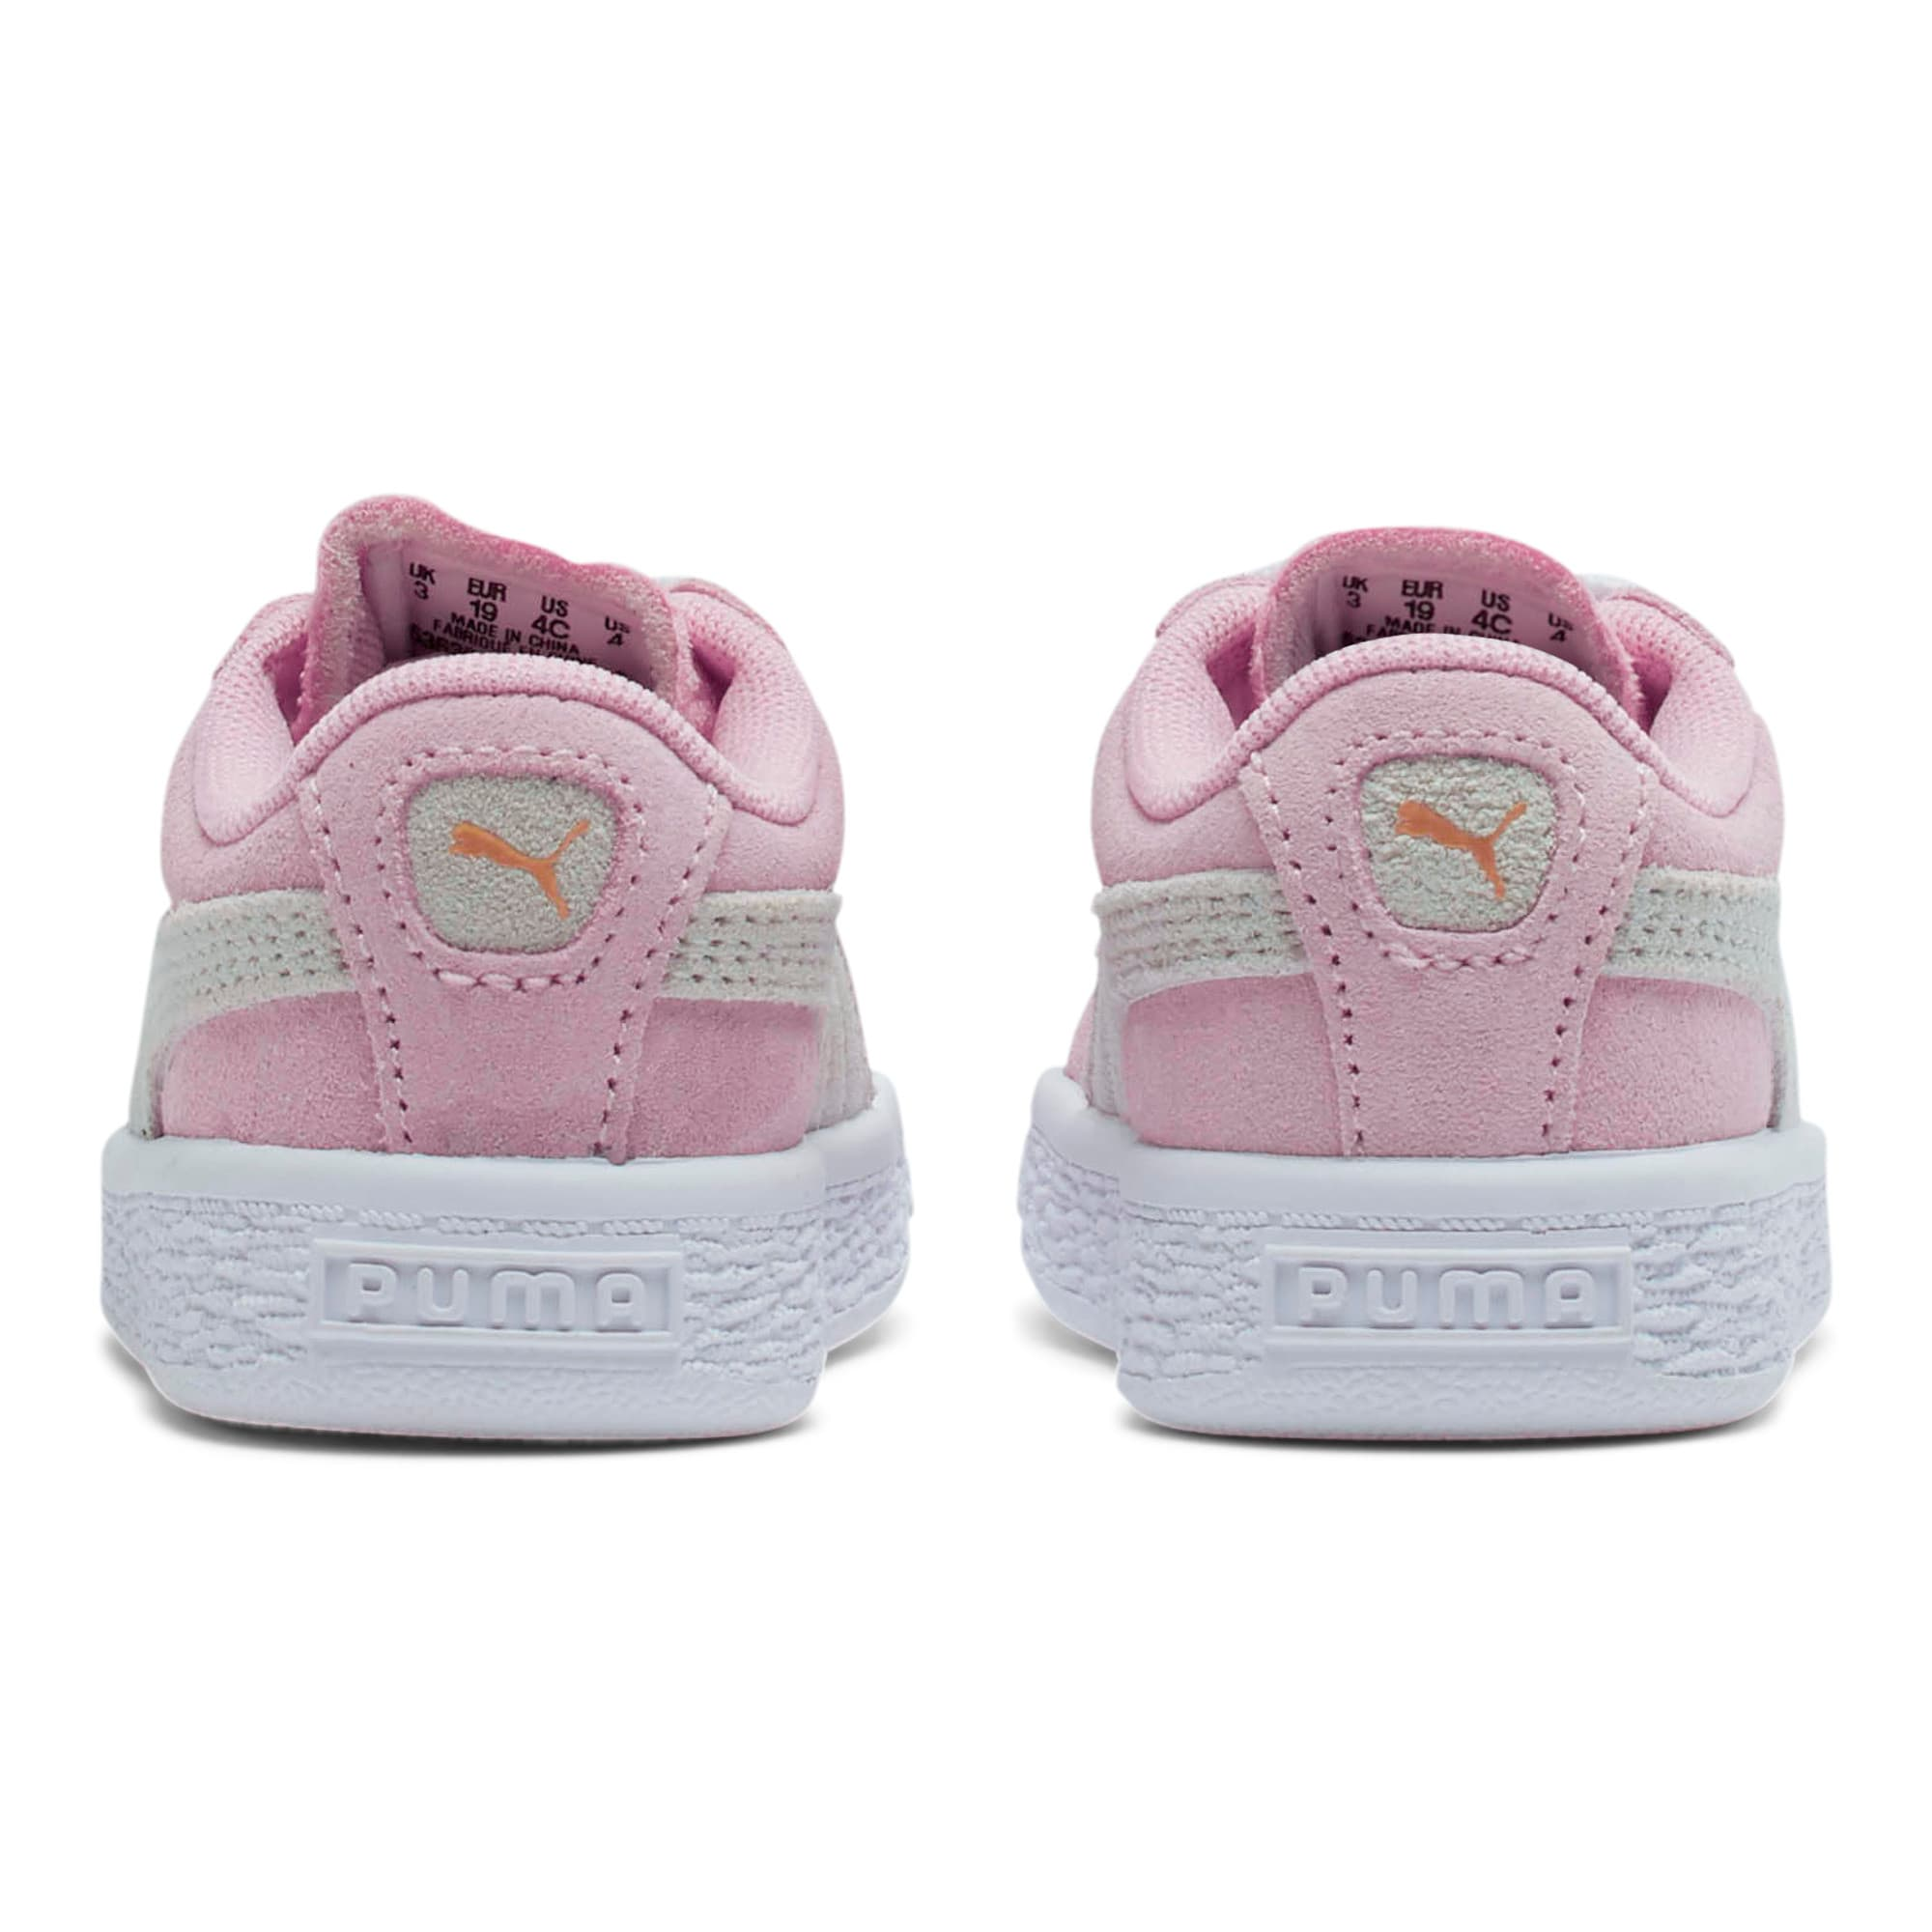 Thumbnail 4 of Puma Suede Toddler Shoes, Pink Lady-Puma White, medium